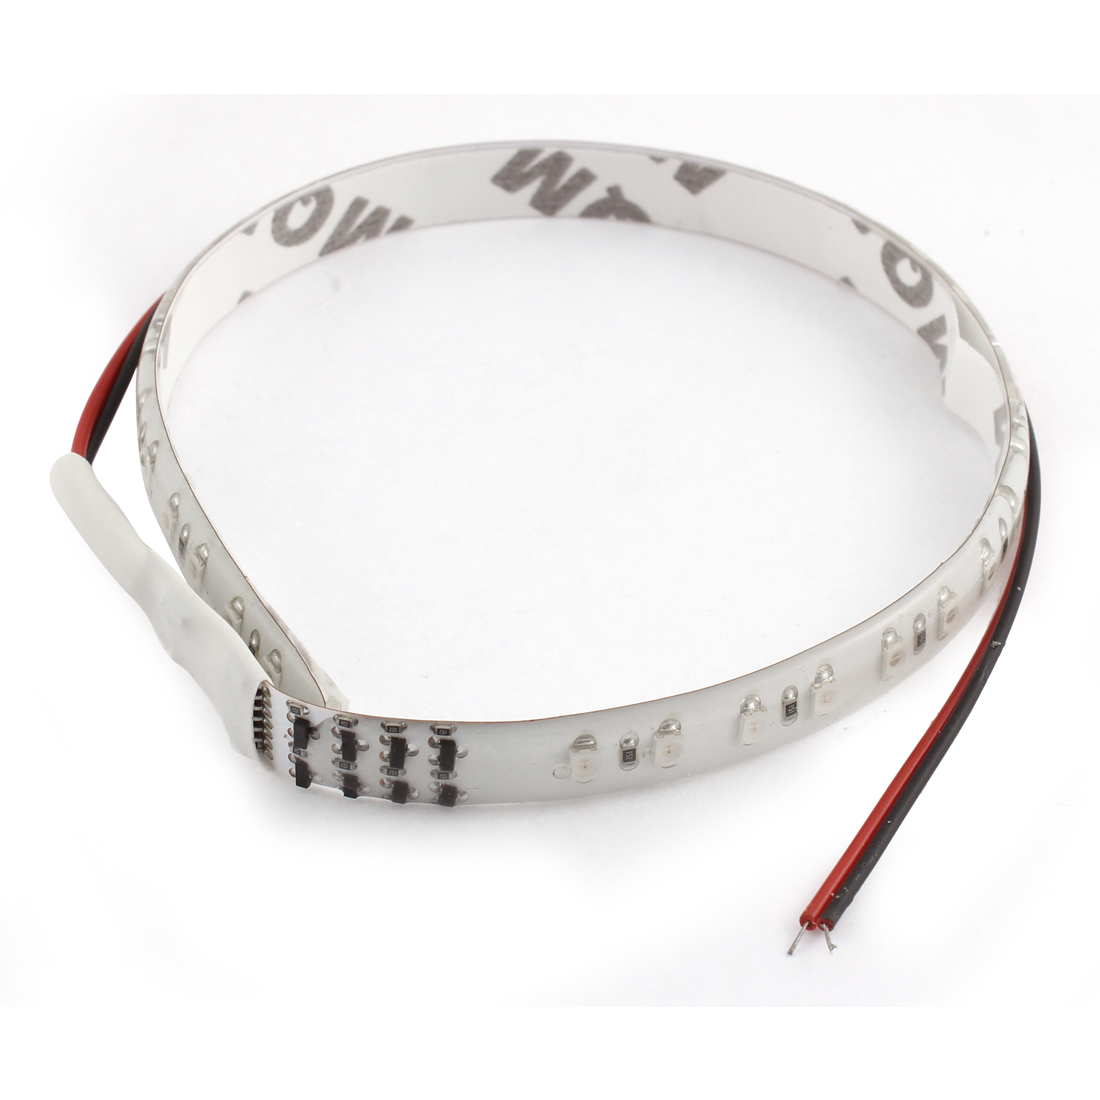 Car 30cm 32 SMD LED Light Waterproof Self-Adhesive Flexible Strip Lamp Colorful internal